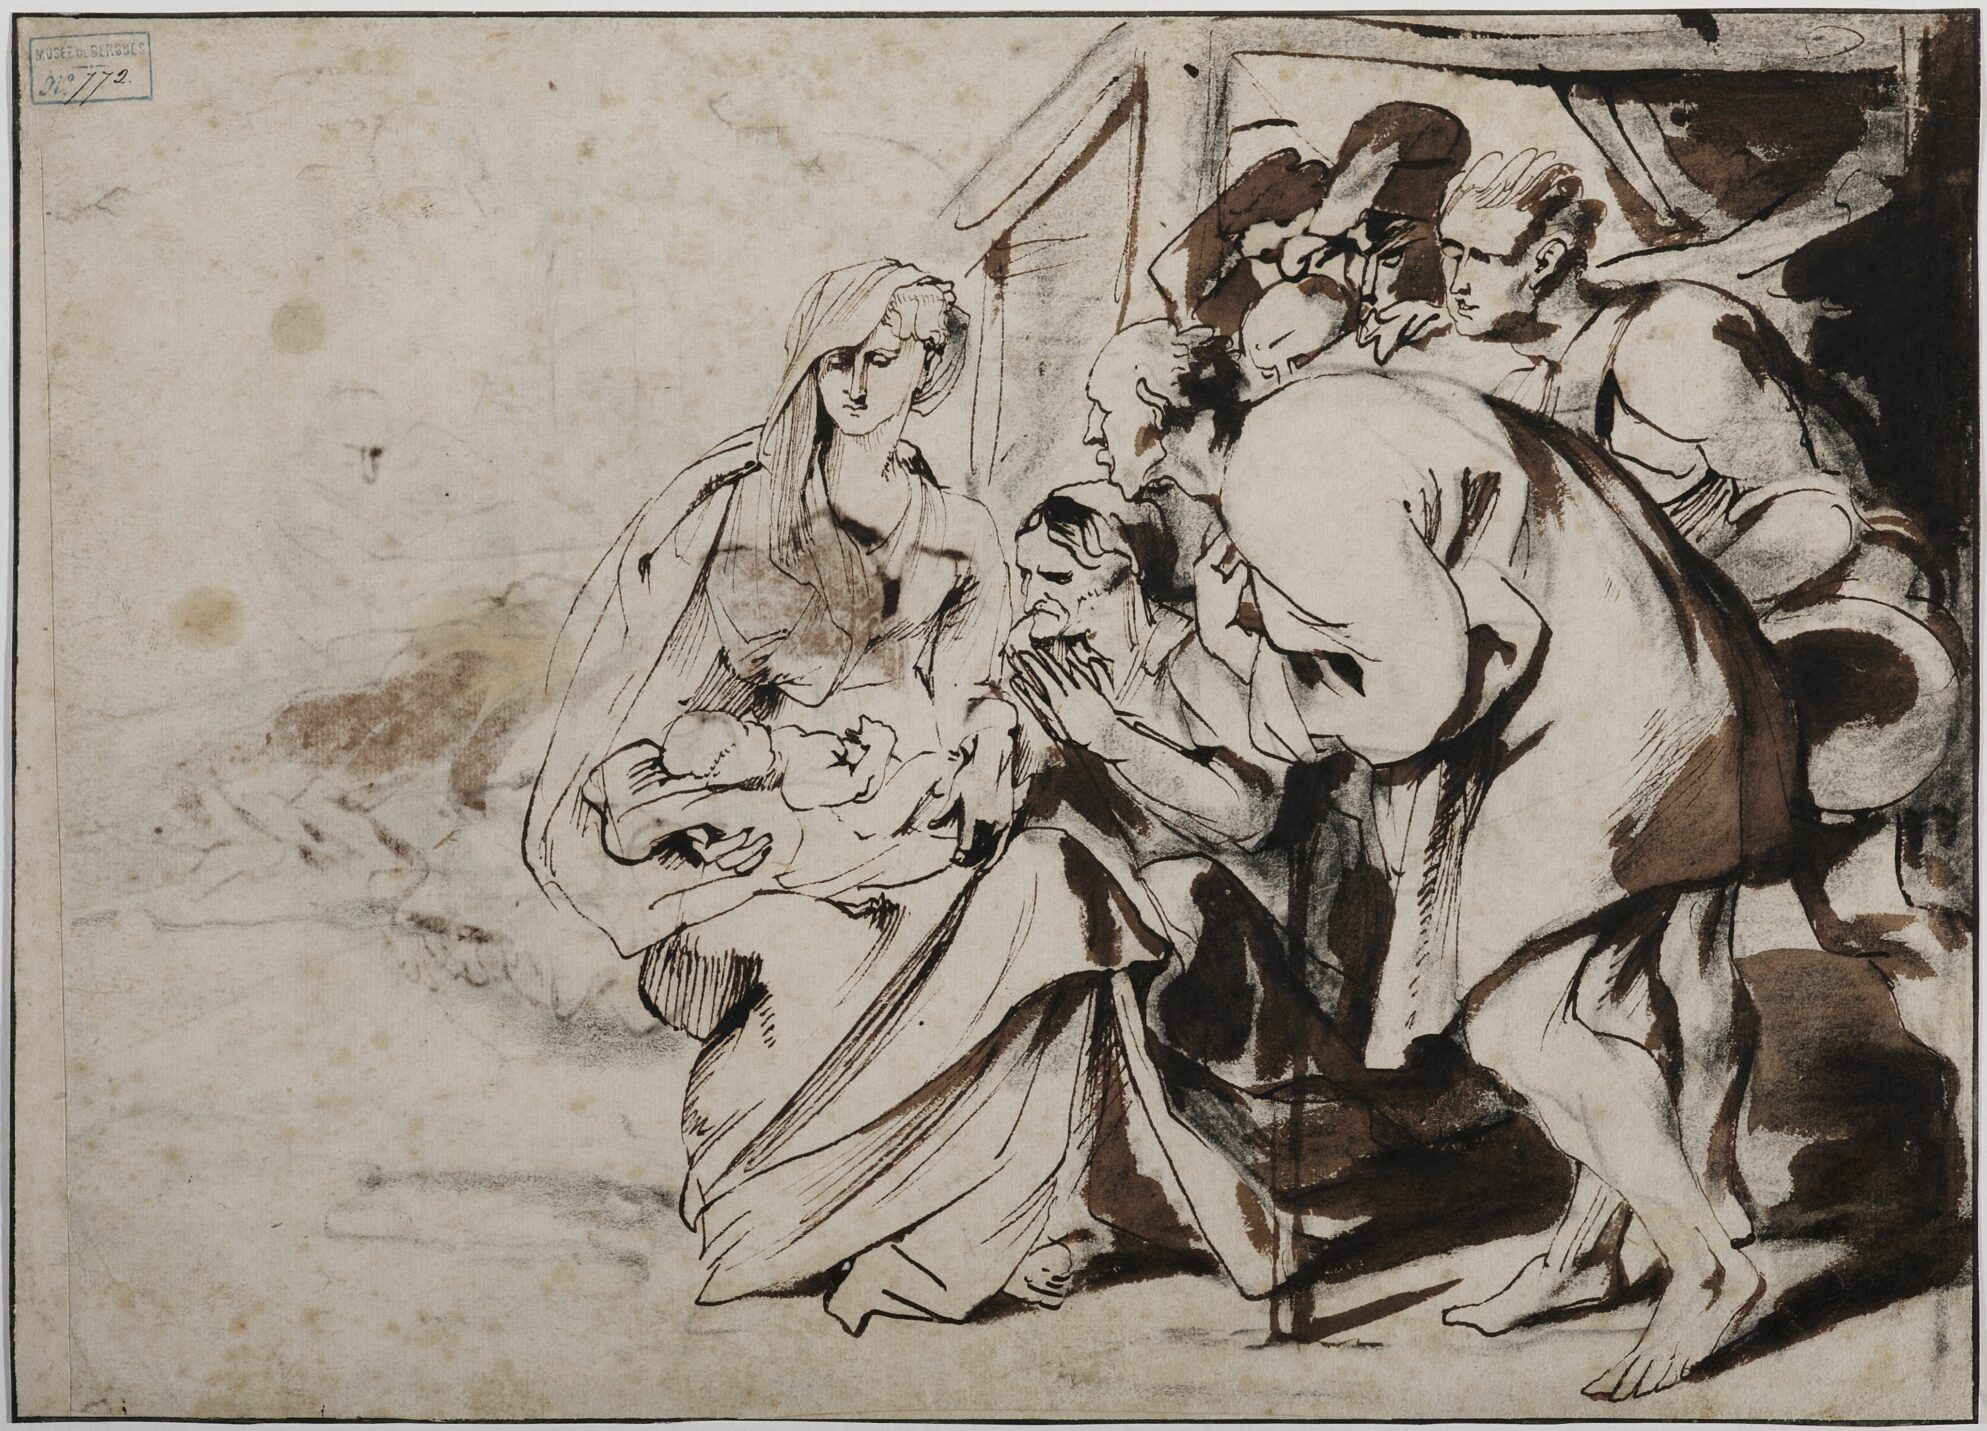 Anthony van Dyck (1599-1641), Adoration of the Shepherds, pen and brown ink, brown wash over black chalk, 20 x 28.5 cm Bergues, Musée du Mont-de-Piété, inv. no. 2011.0.209.772 © Musée du Mont-de-Piété - Bergues / Photo Studio Mallevaey